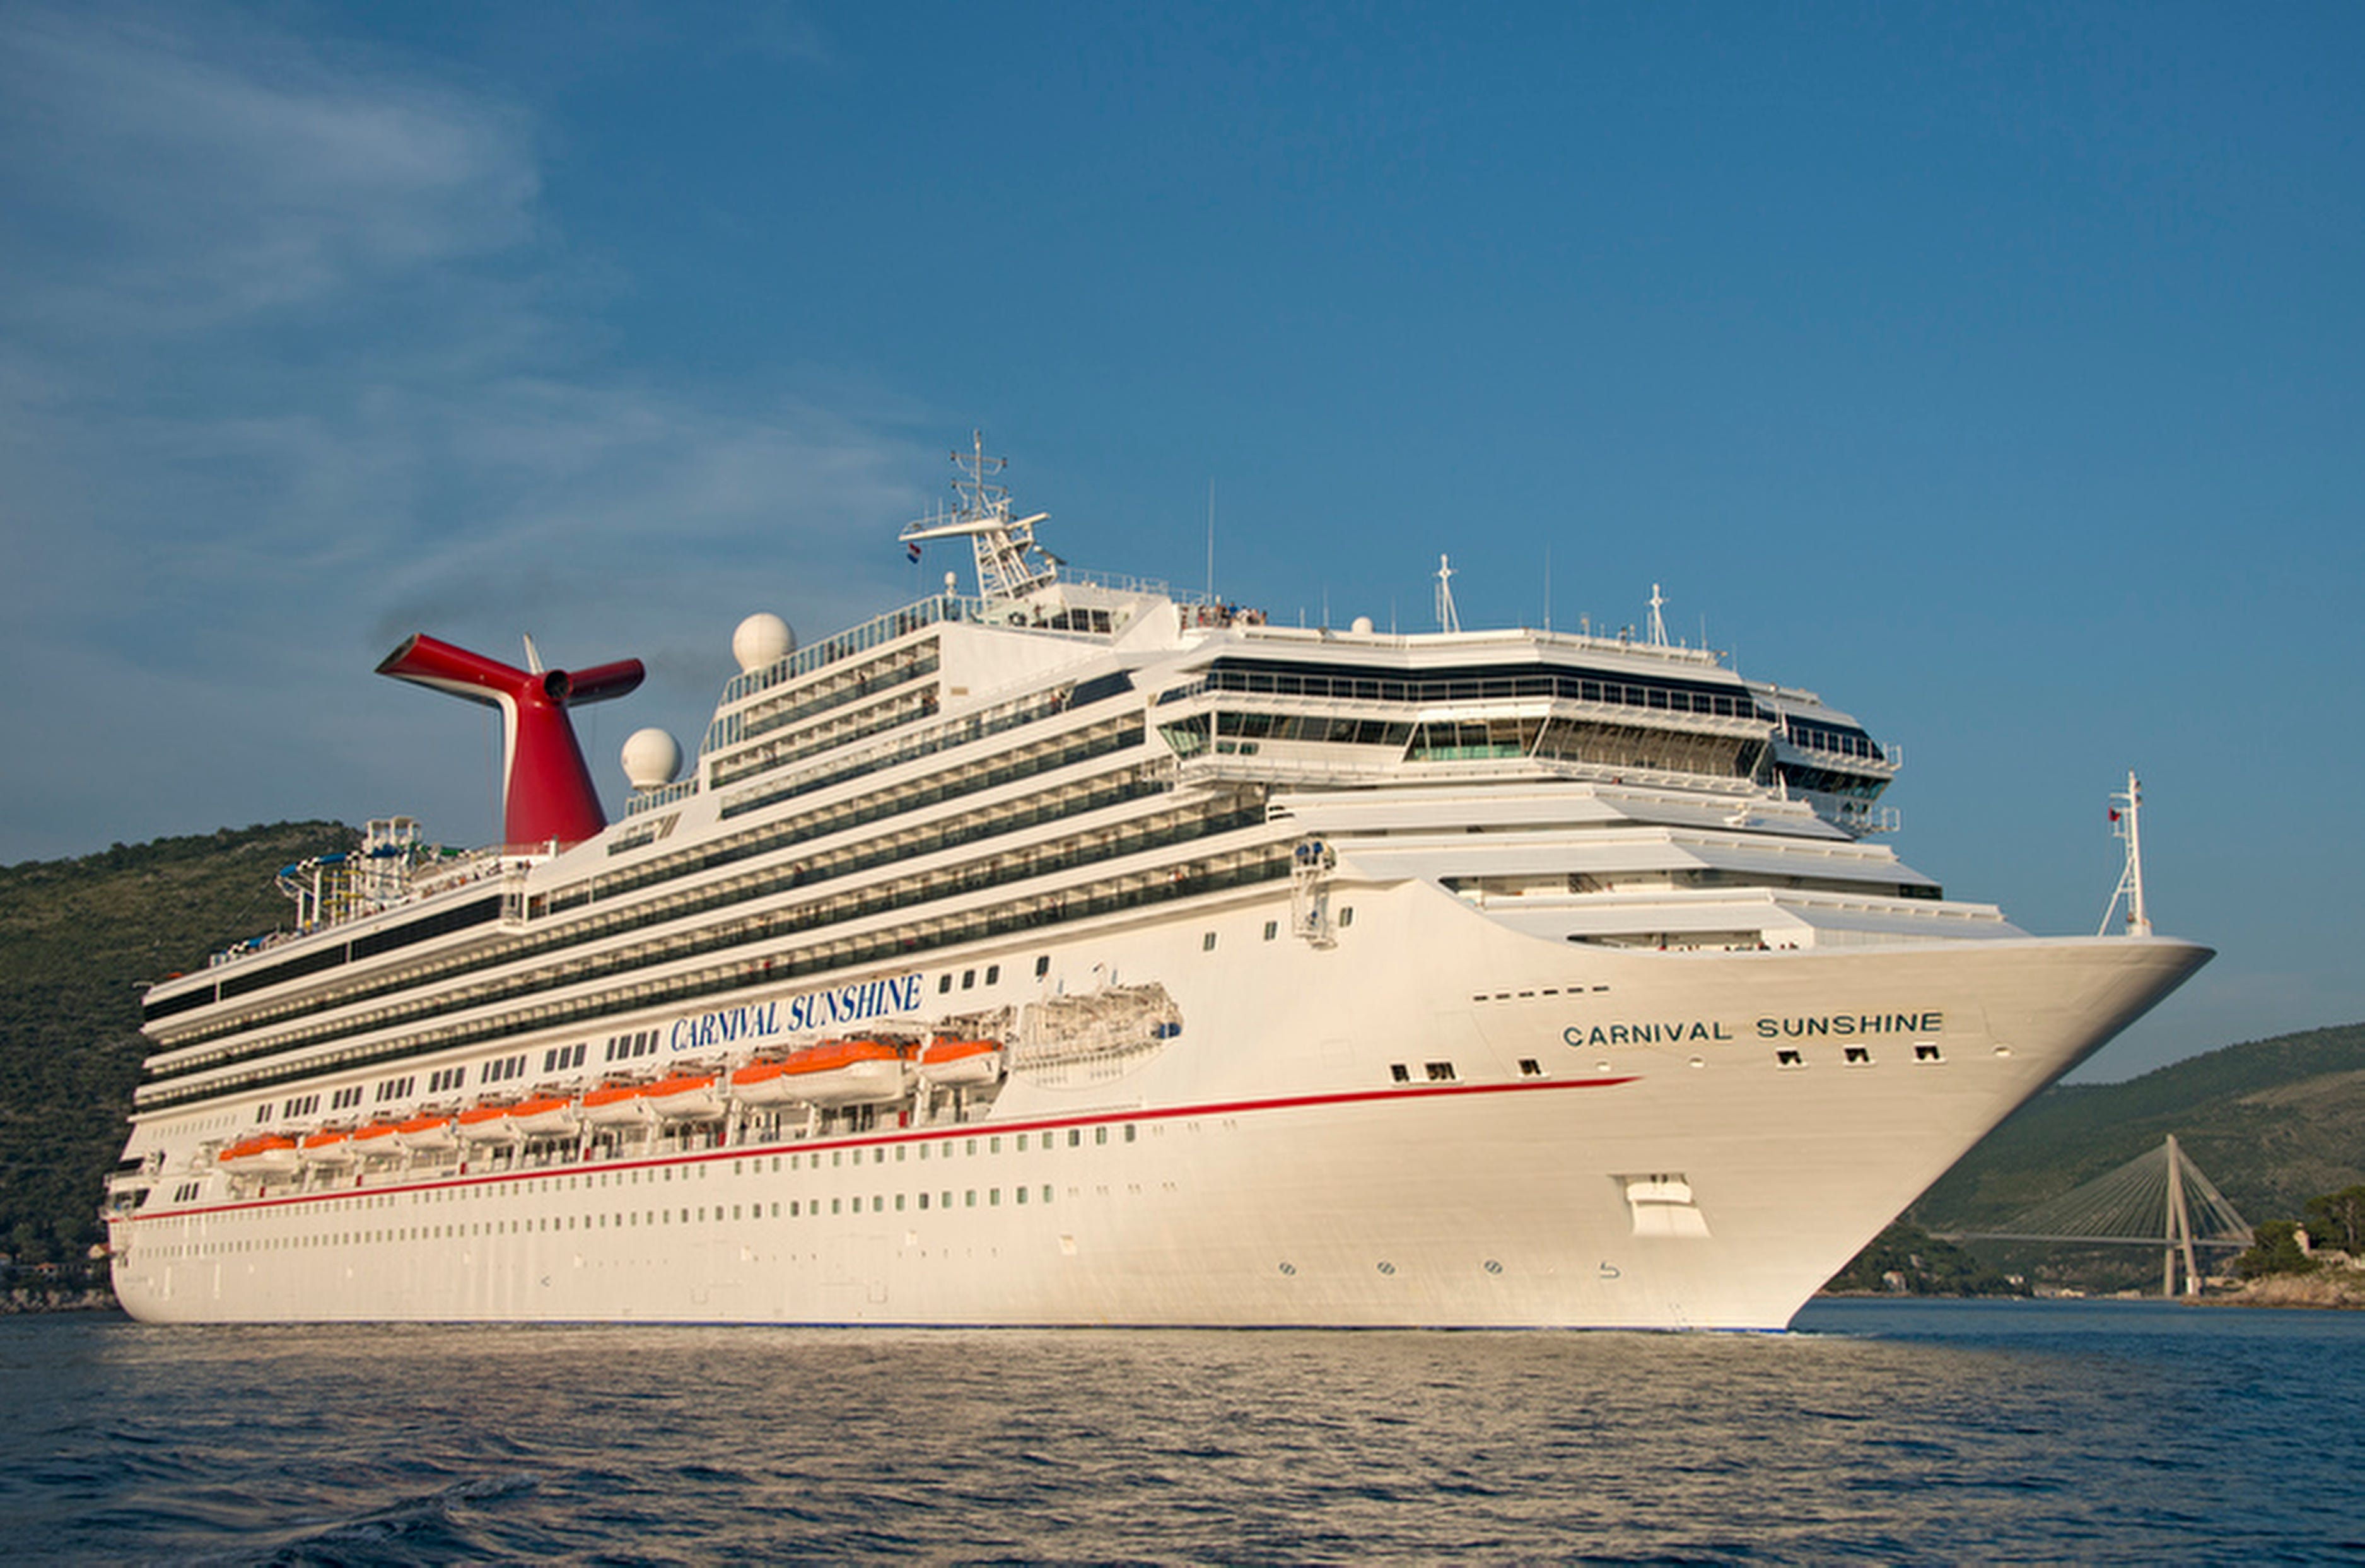 Free online dating no hidden costs on carnival cruise